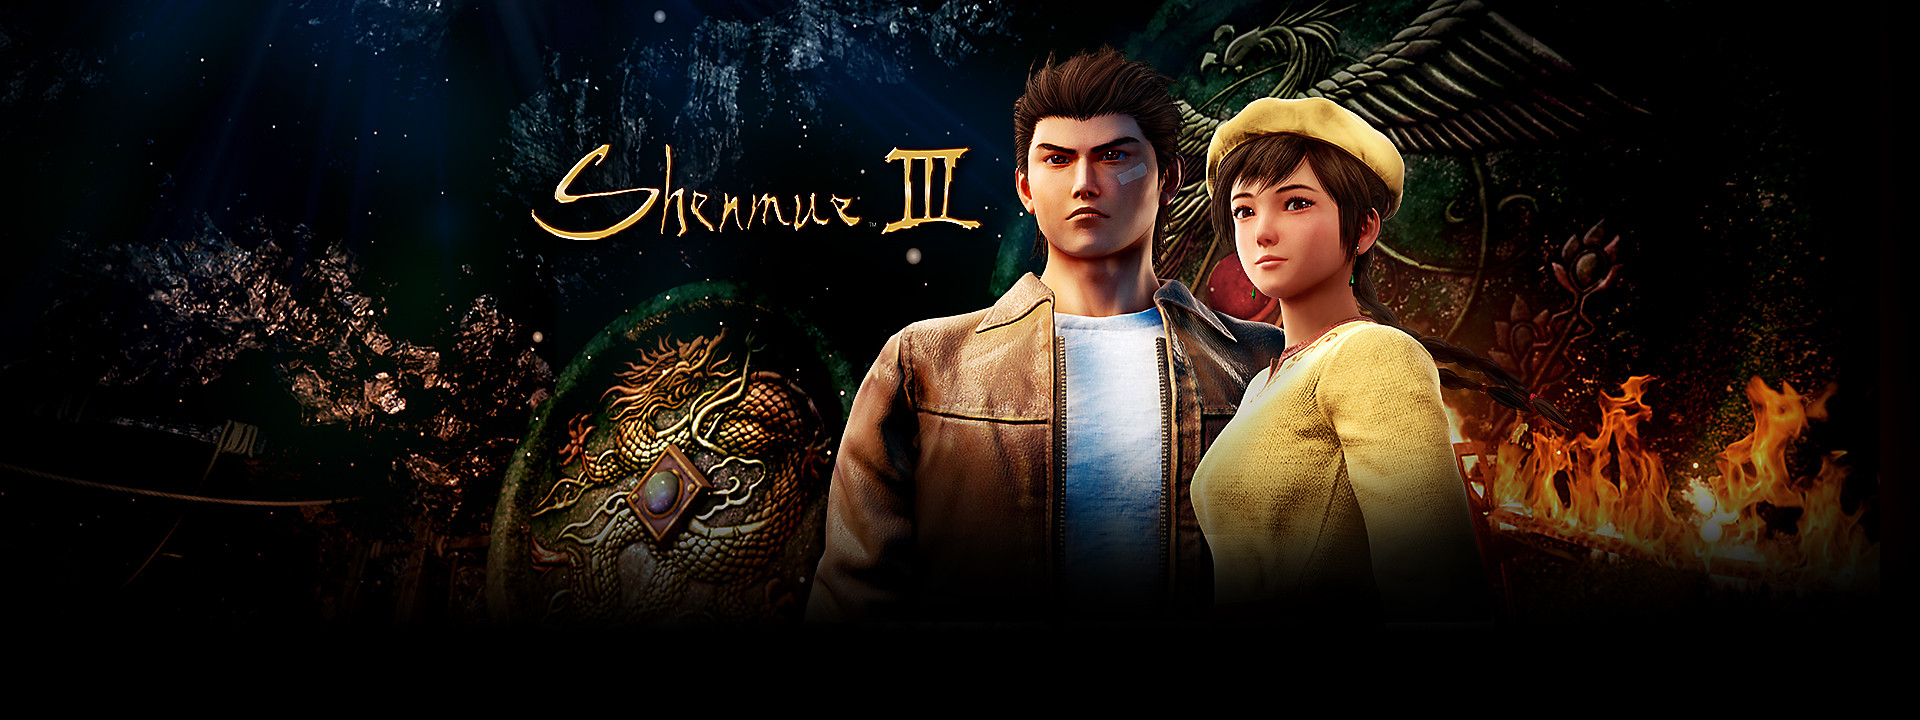 Shenmue III - Now Available